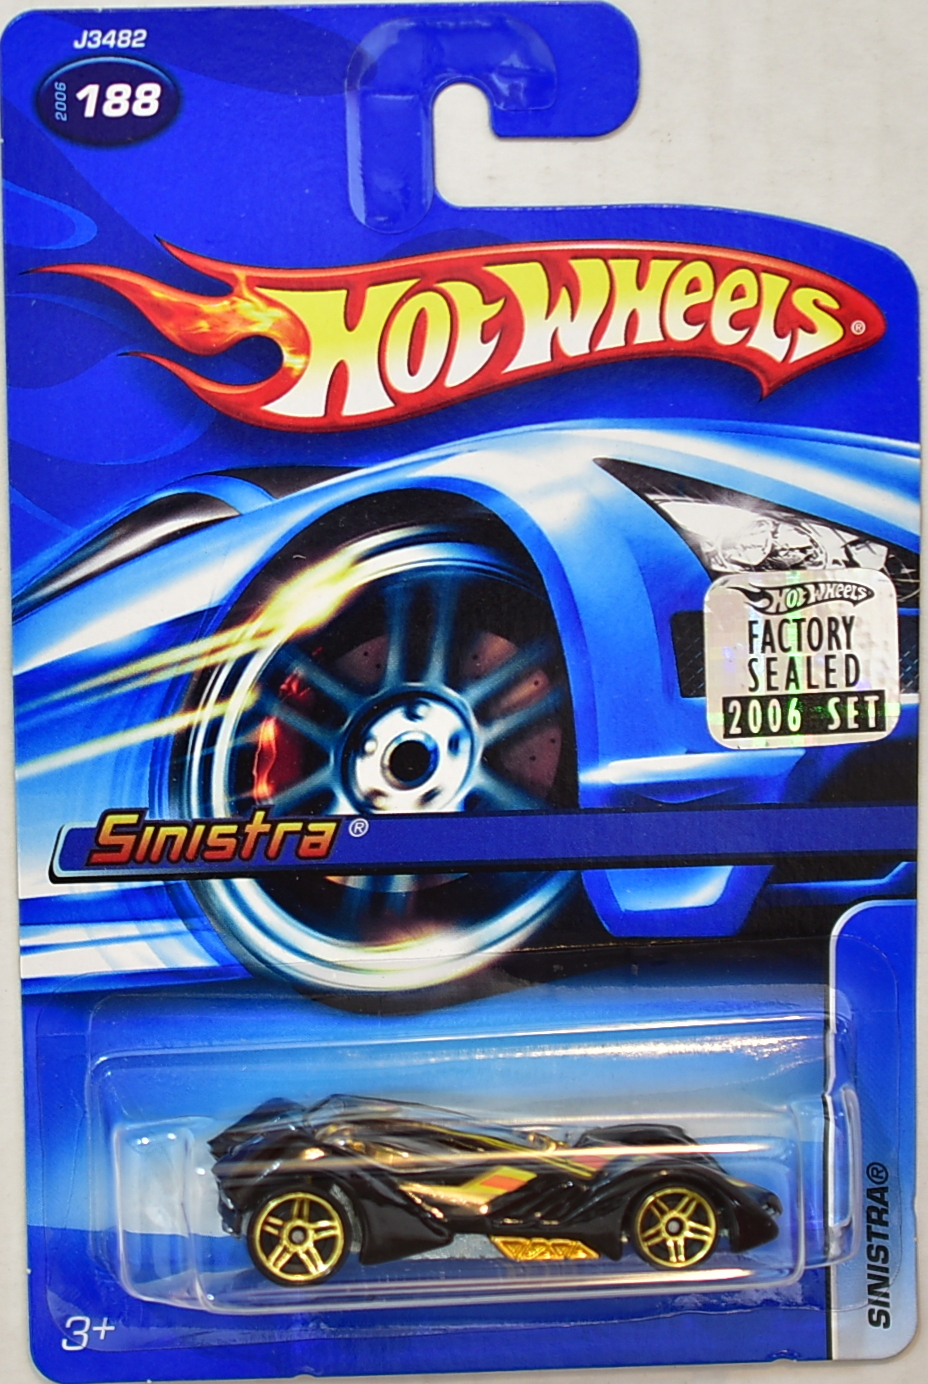 HOT WHEELS 2006 SINISTRA #188 FACTORY SEALED